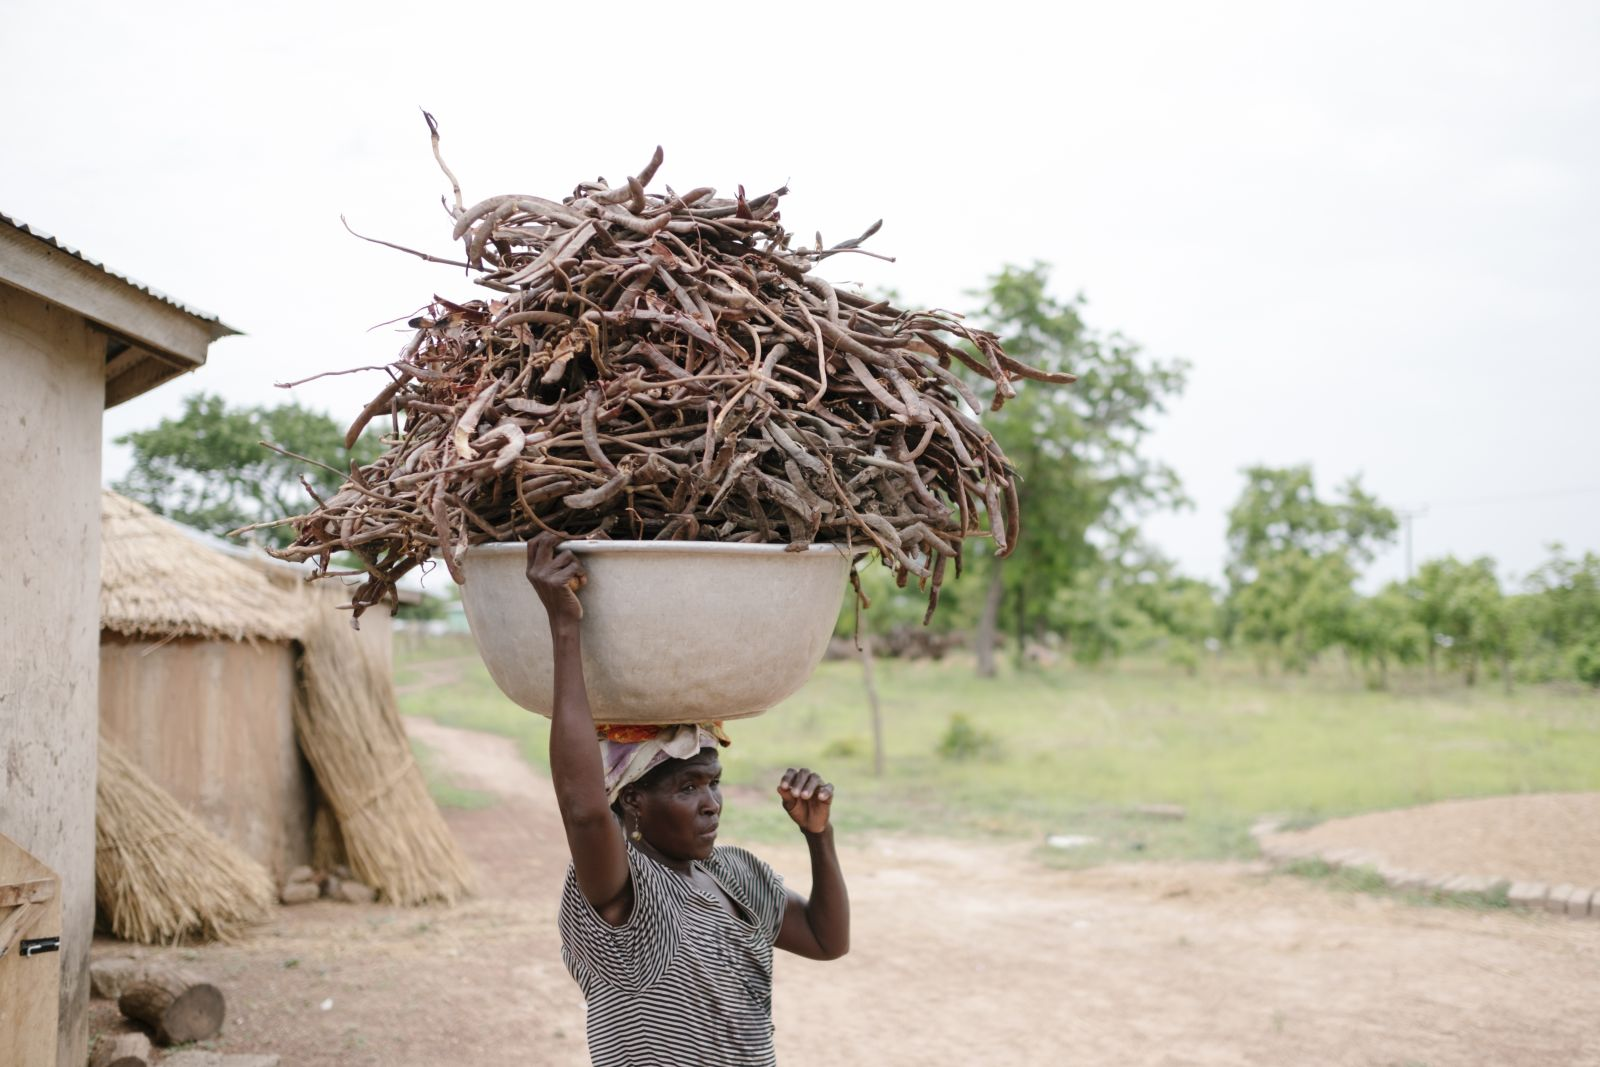 Ecosia's Tree planting officer visits Ecosia's project in Ghana